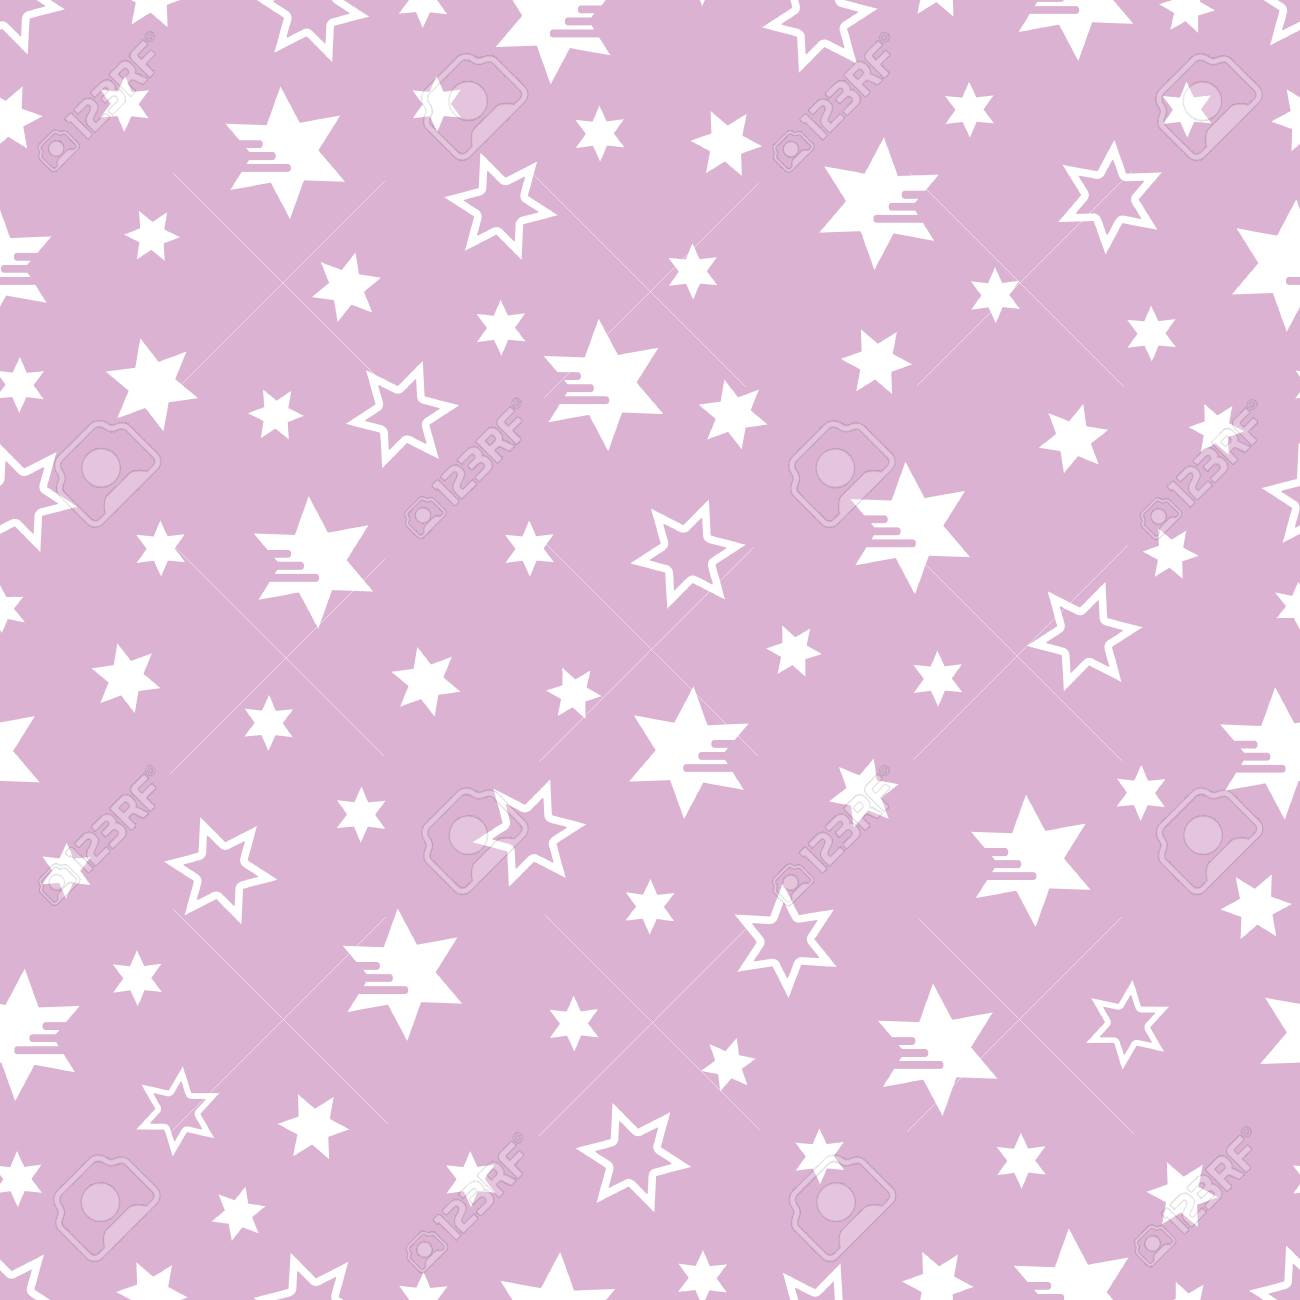 Christmas Fabric 2019.Seamless Pattern With Stars Christmas And New Year 2019 Background